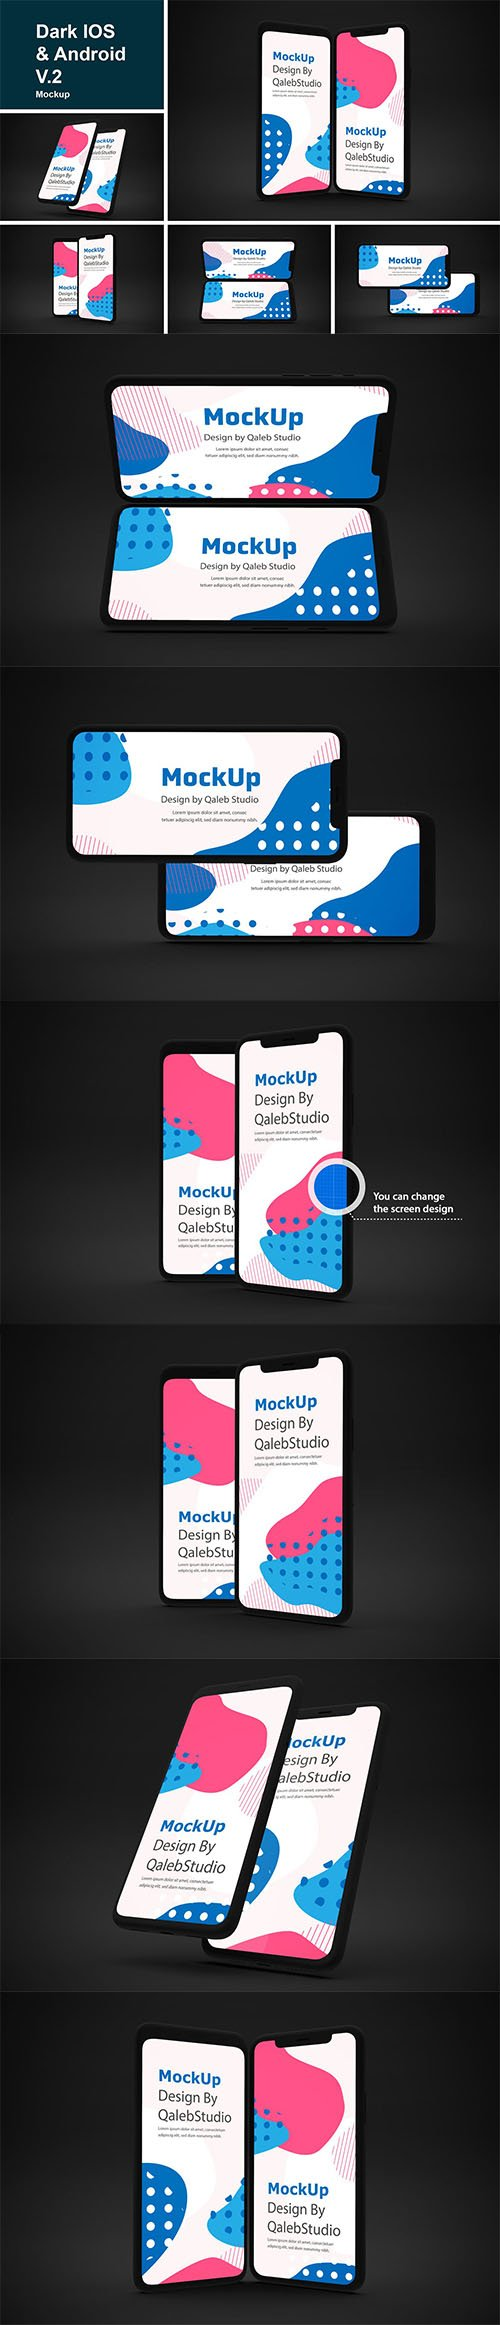 Dark IOS & Android Mockup V.2